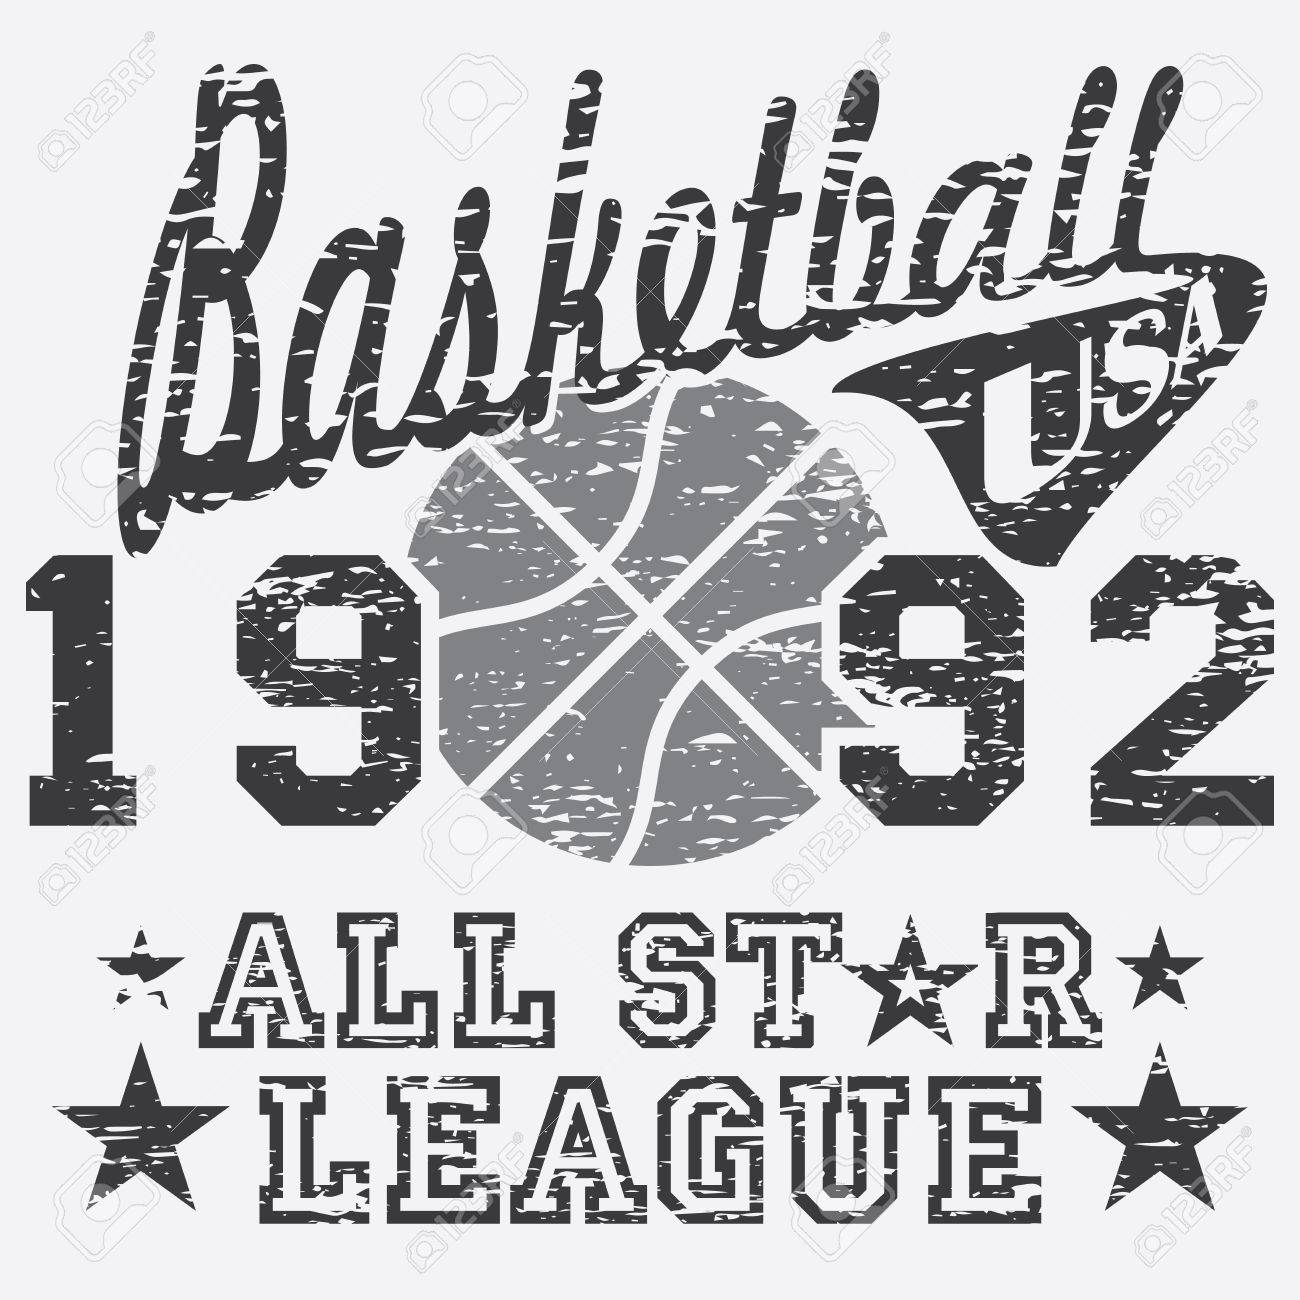 Design t shirt and print - Design T Shirt With Print Basketball All Star League Artwork Typography Poster T Shirt Printing